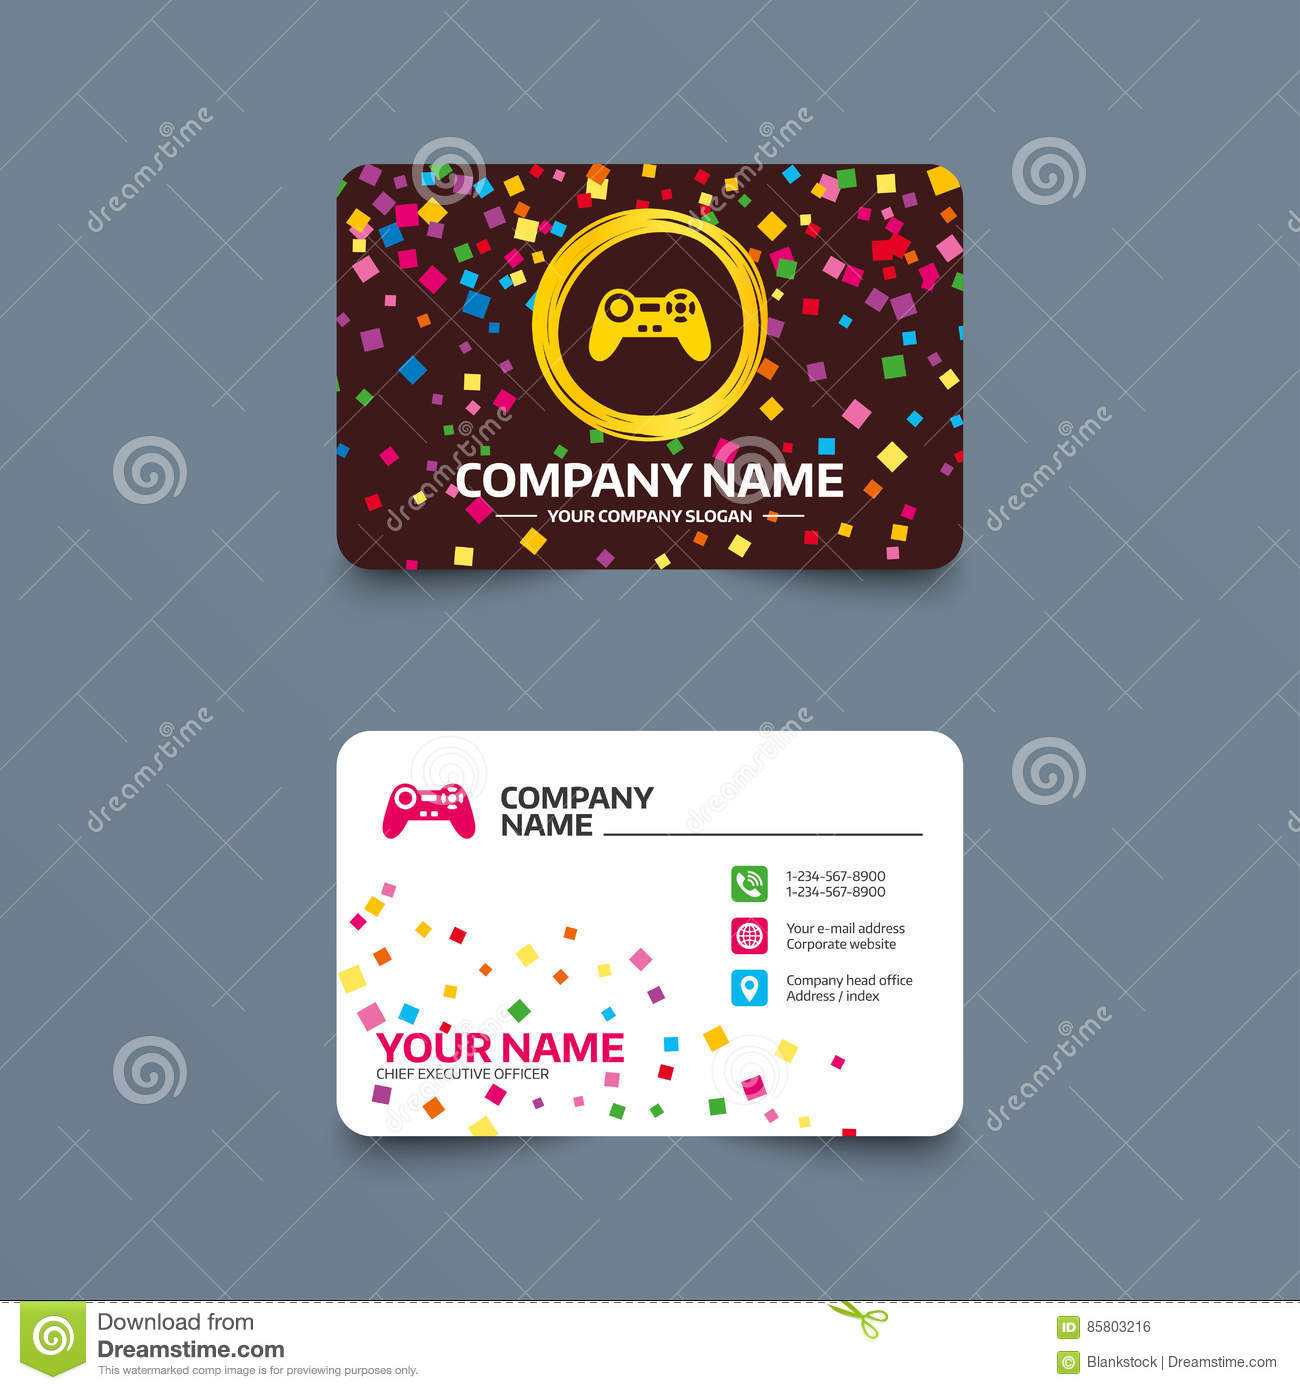 Joystick sign icon video game symbol stock vector for Video game business cards